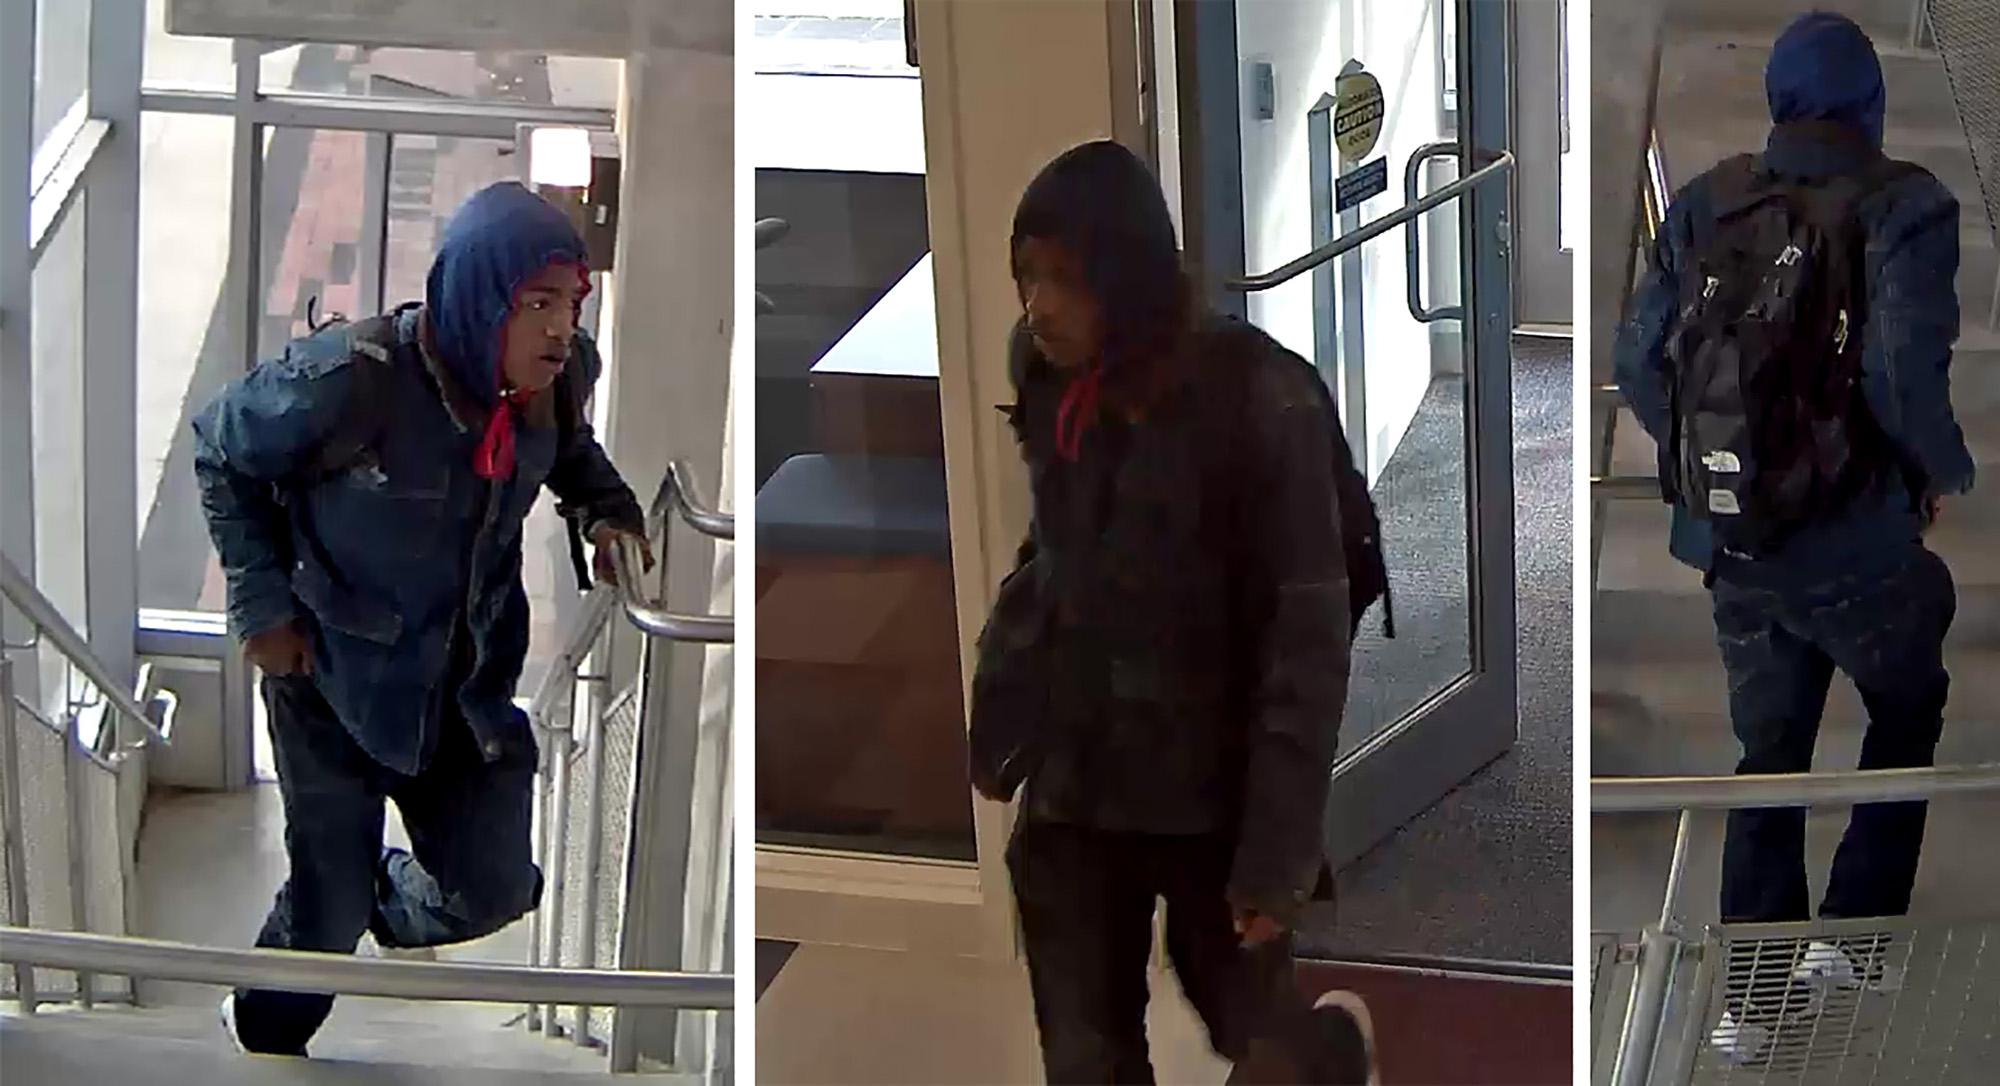 Police are looking for the man pictured in this Nov. 24 security camera footage from parking garage B-4, 405 N. Goodwin Ave., Urbana. He is believed to have been involved in at least two car break-ins.